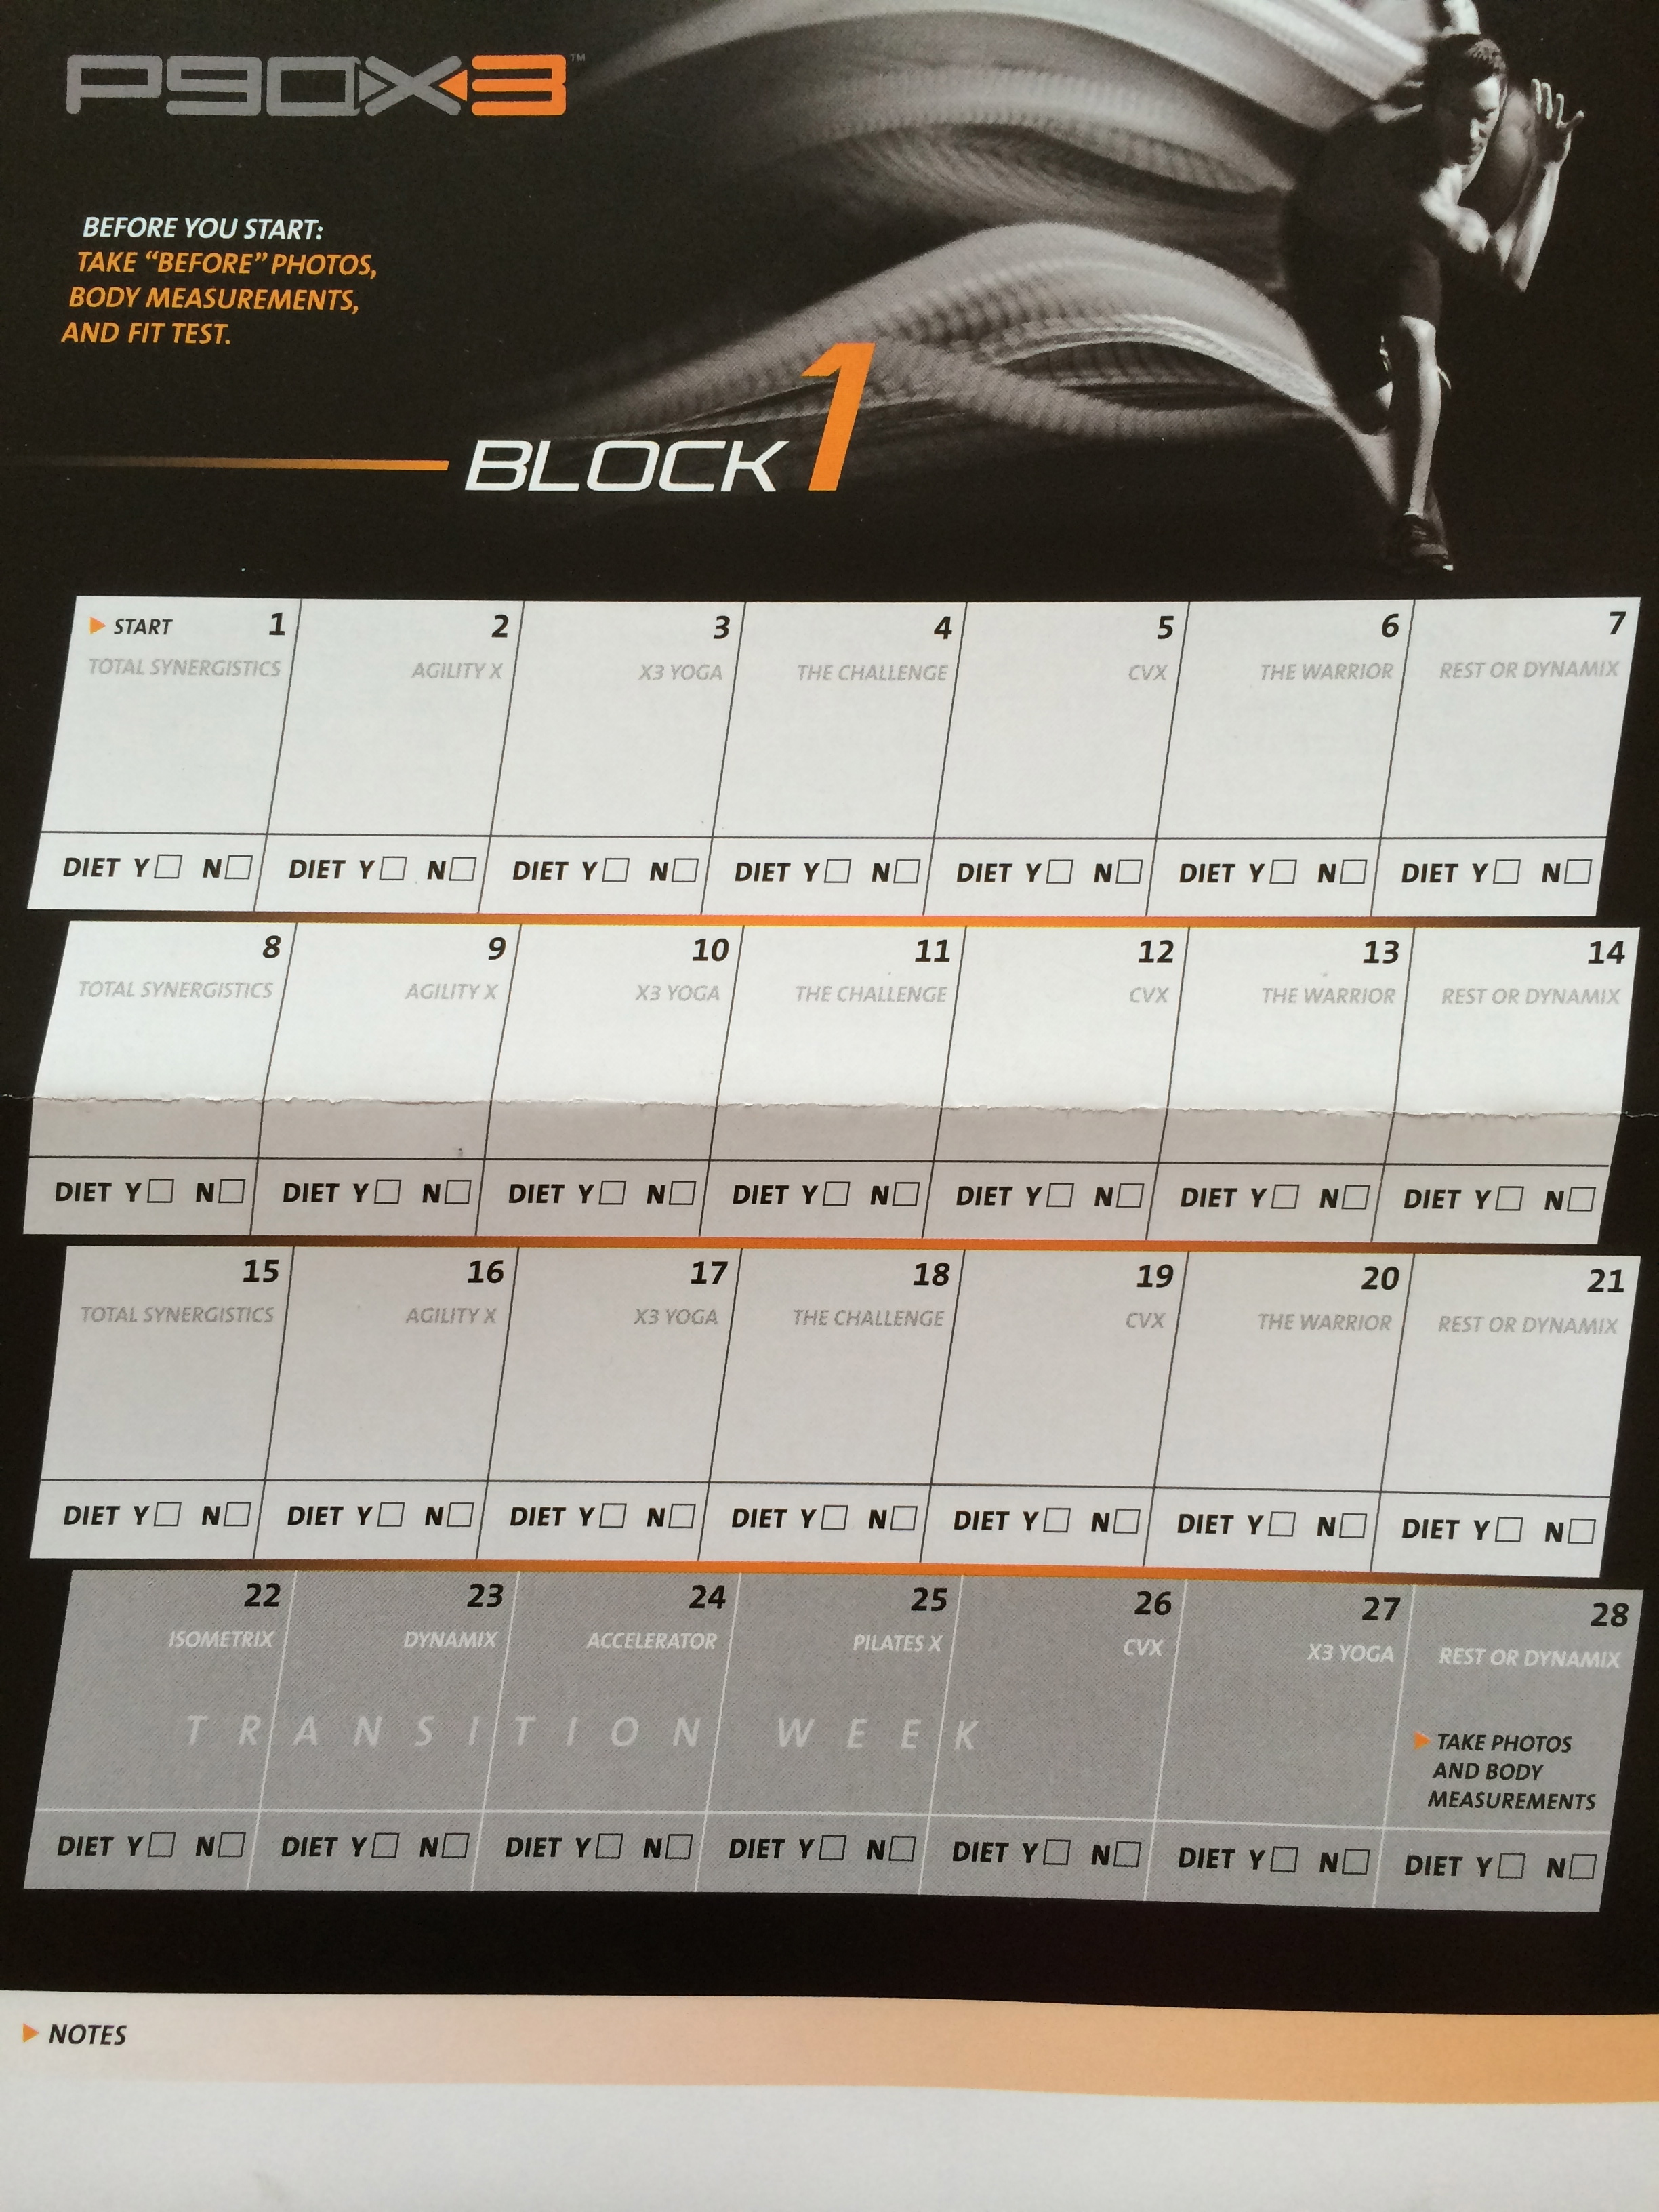 P90x3 Workout Tracker